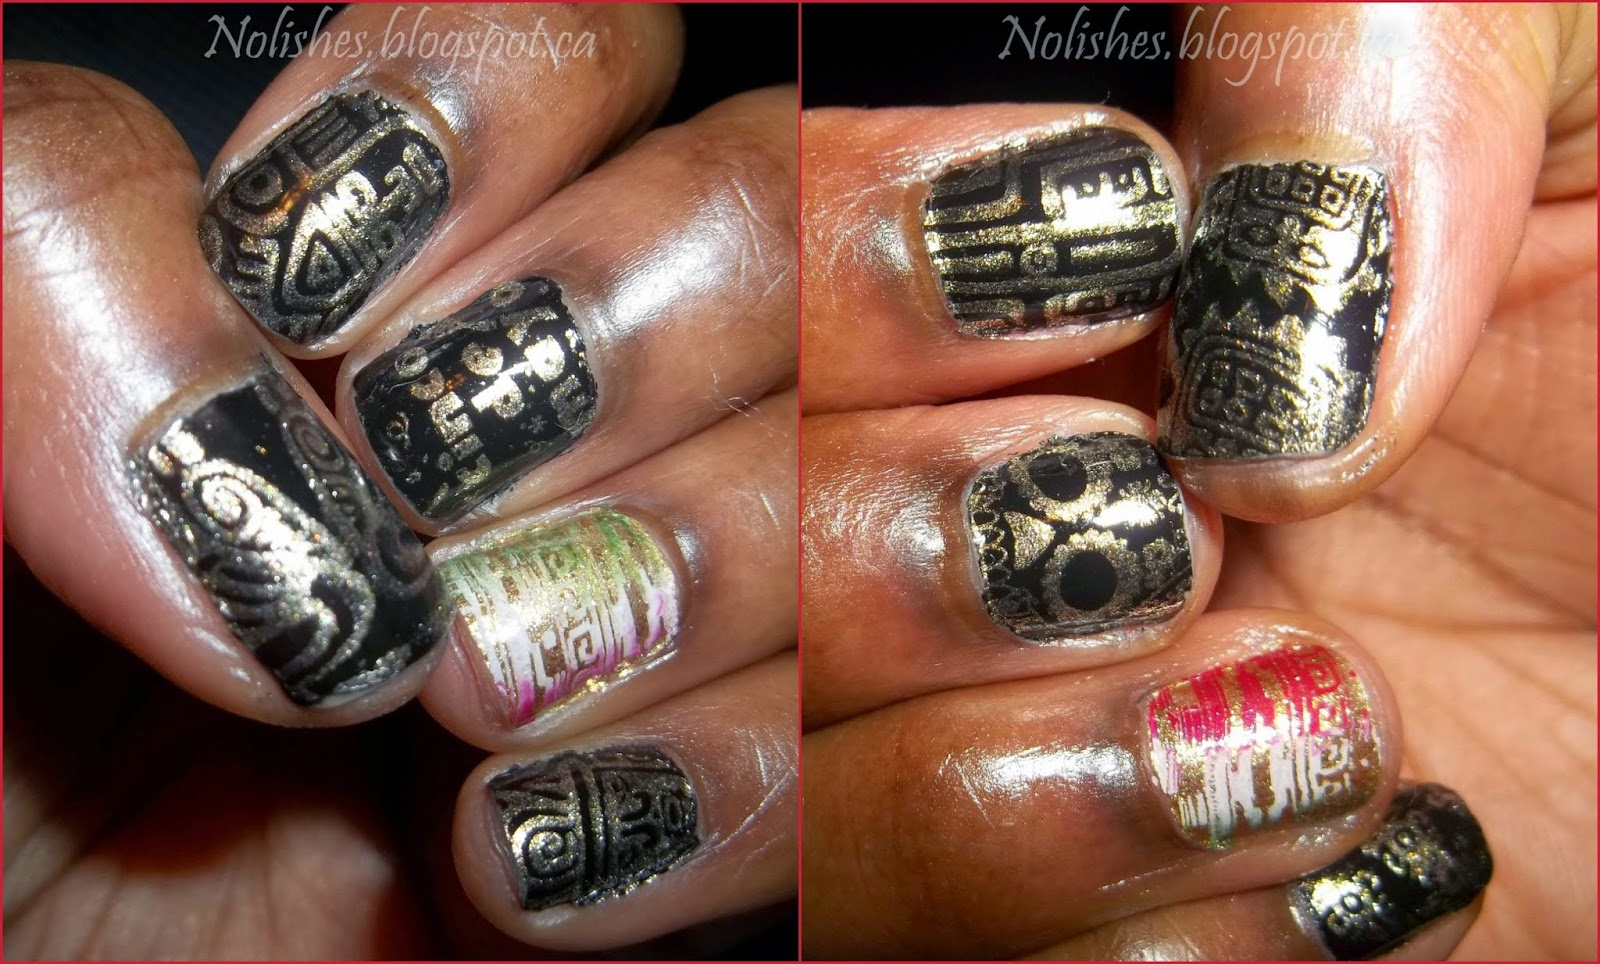 Cinco de Mayo Nail Stamping Manicure in Black, Gold, Red, White and Green. Stamped using Cheeky's Jumbo Plate 1 'Viva Mexico', and Moyou London's Pro XL Collection plate 06.